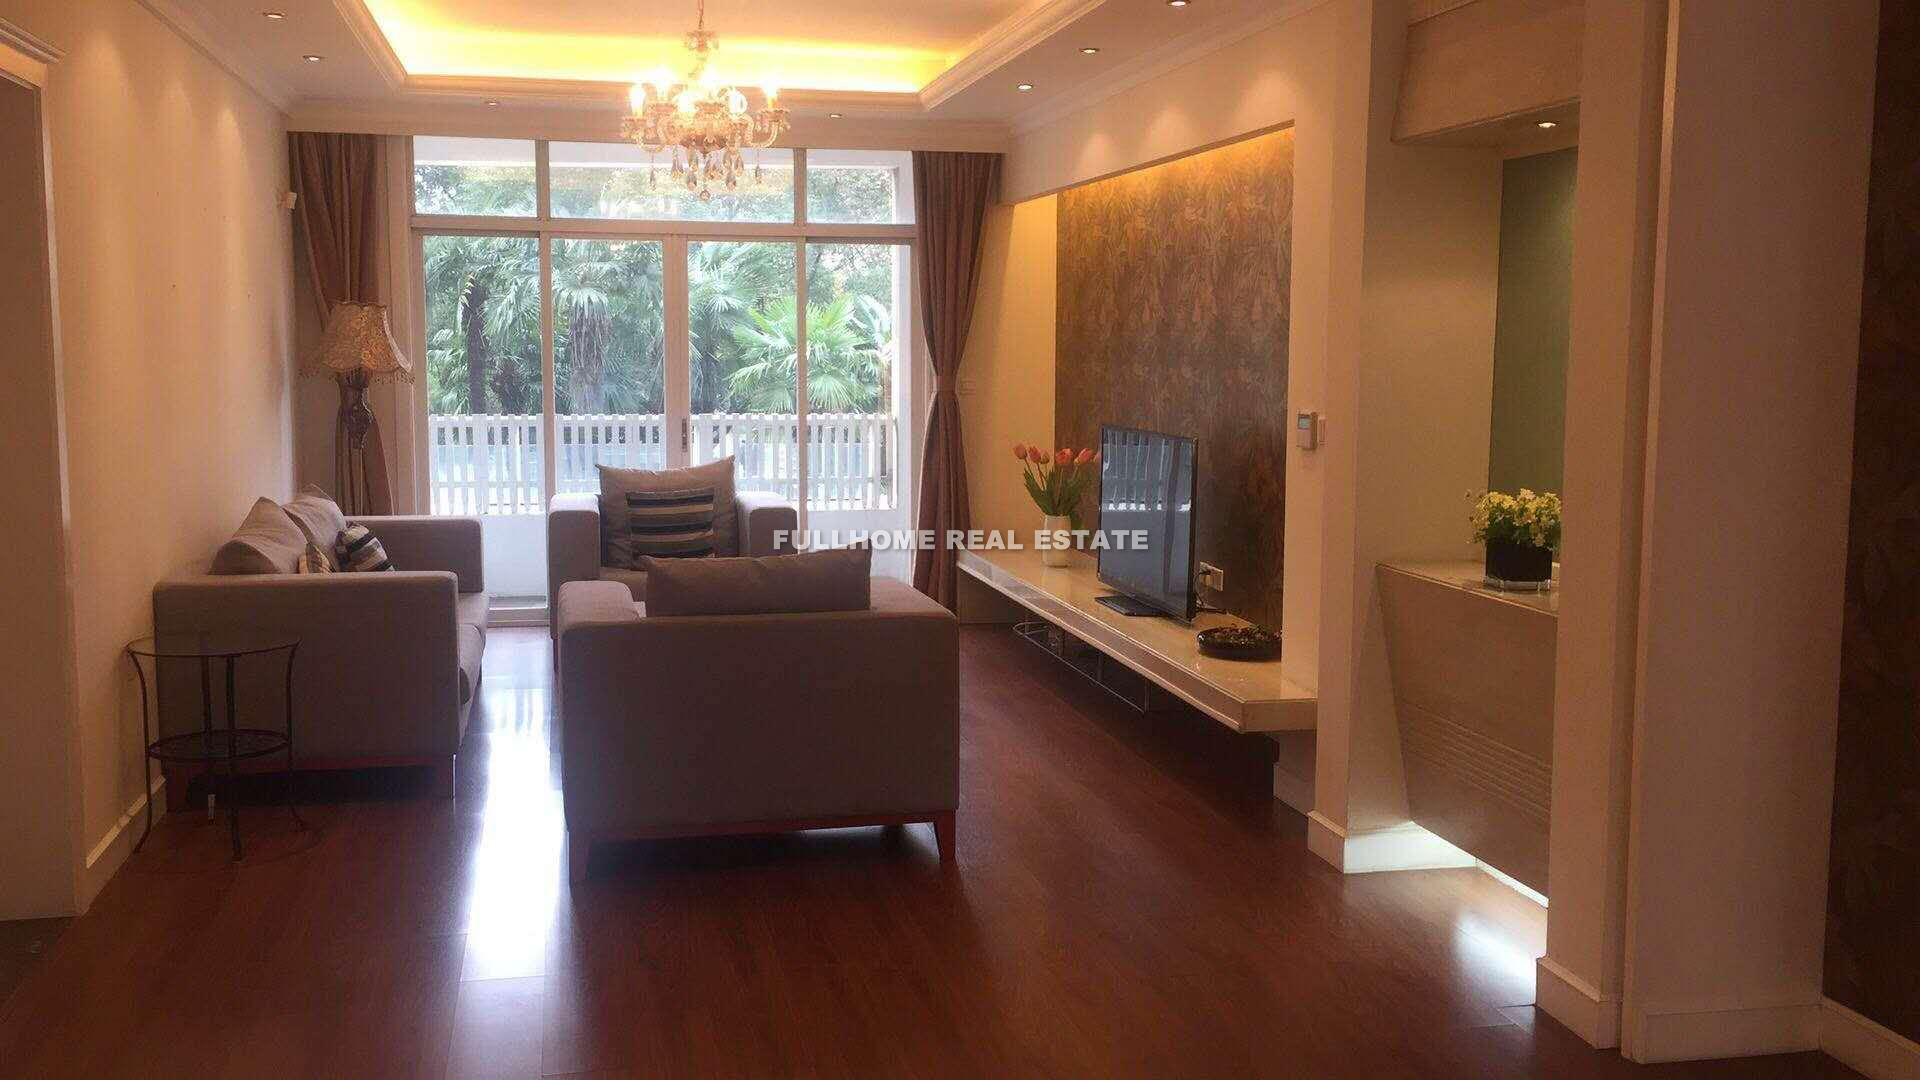 Golden Vienna shanghai for Rent | Fullhome Real Estate